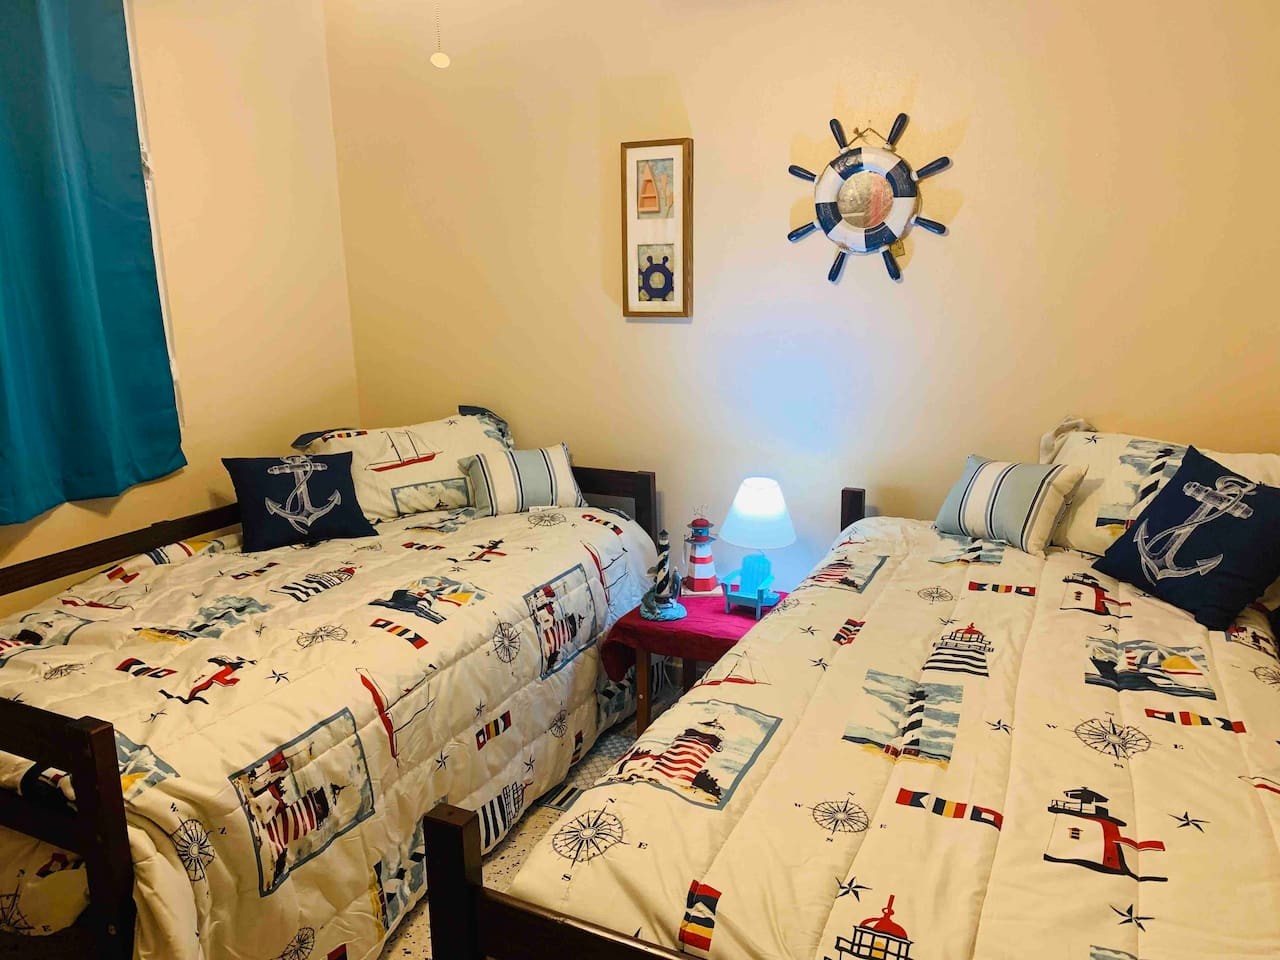 A Nautical theme room has been prepared paying attention to details to tickle your senses. Twin beds for anyone who wants to sleep with a sibling or a friend but still be comfortable.